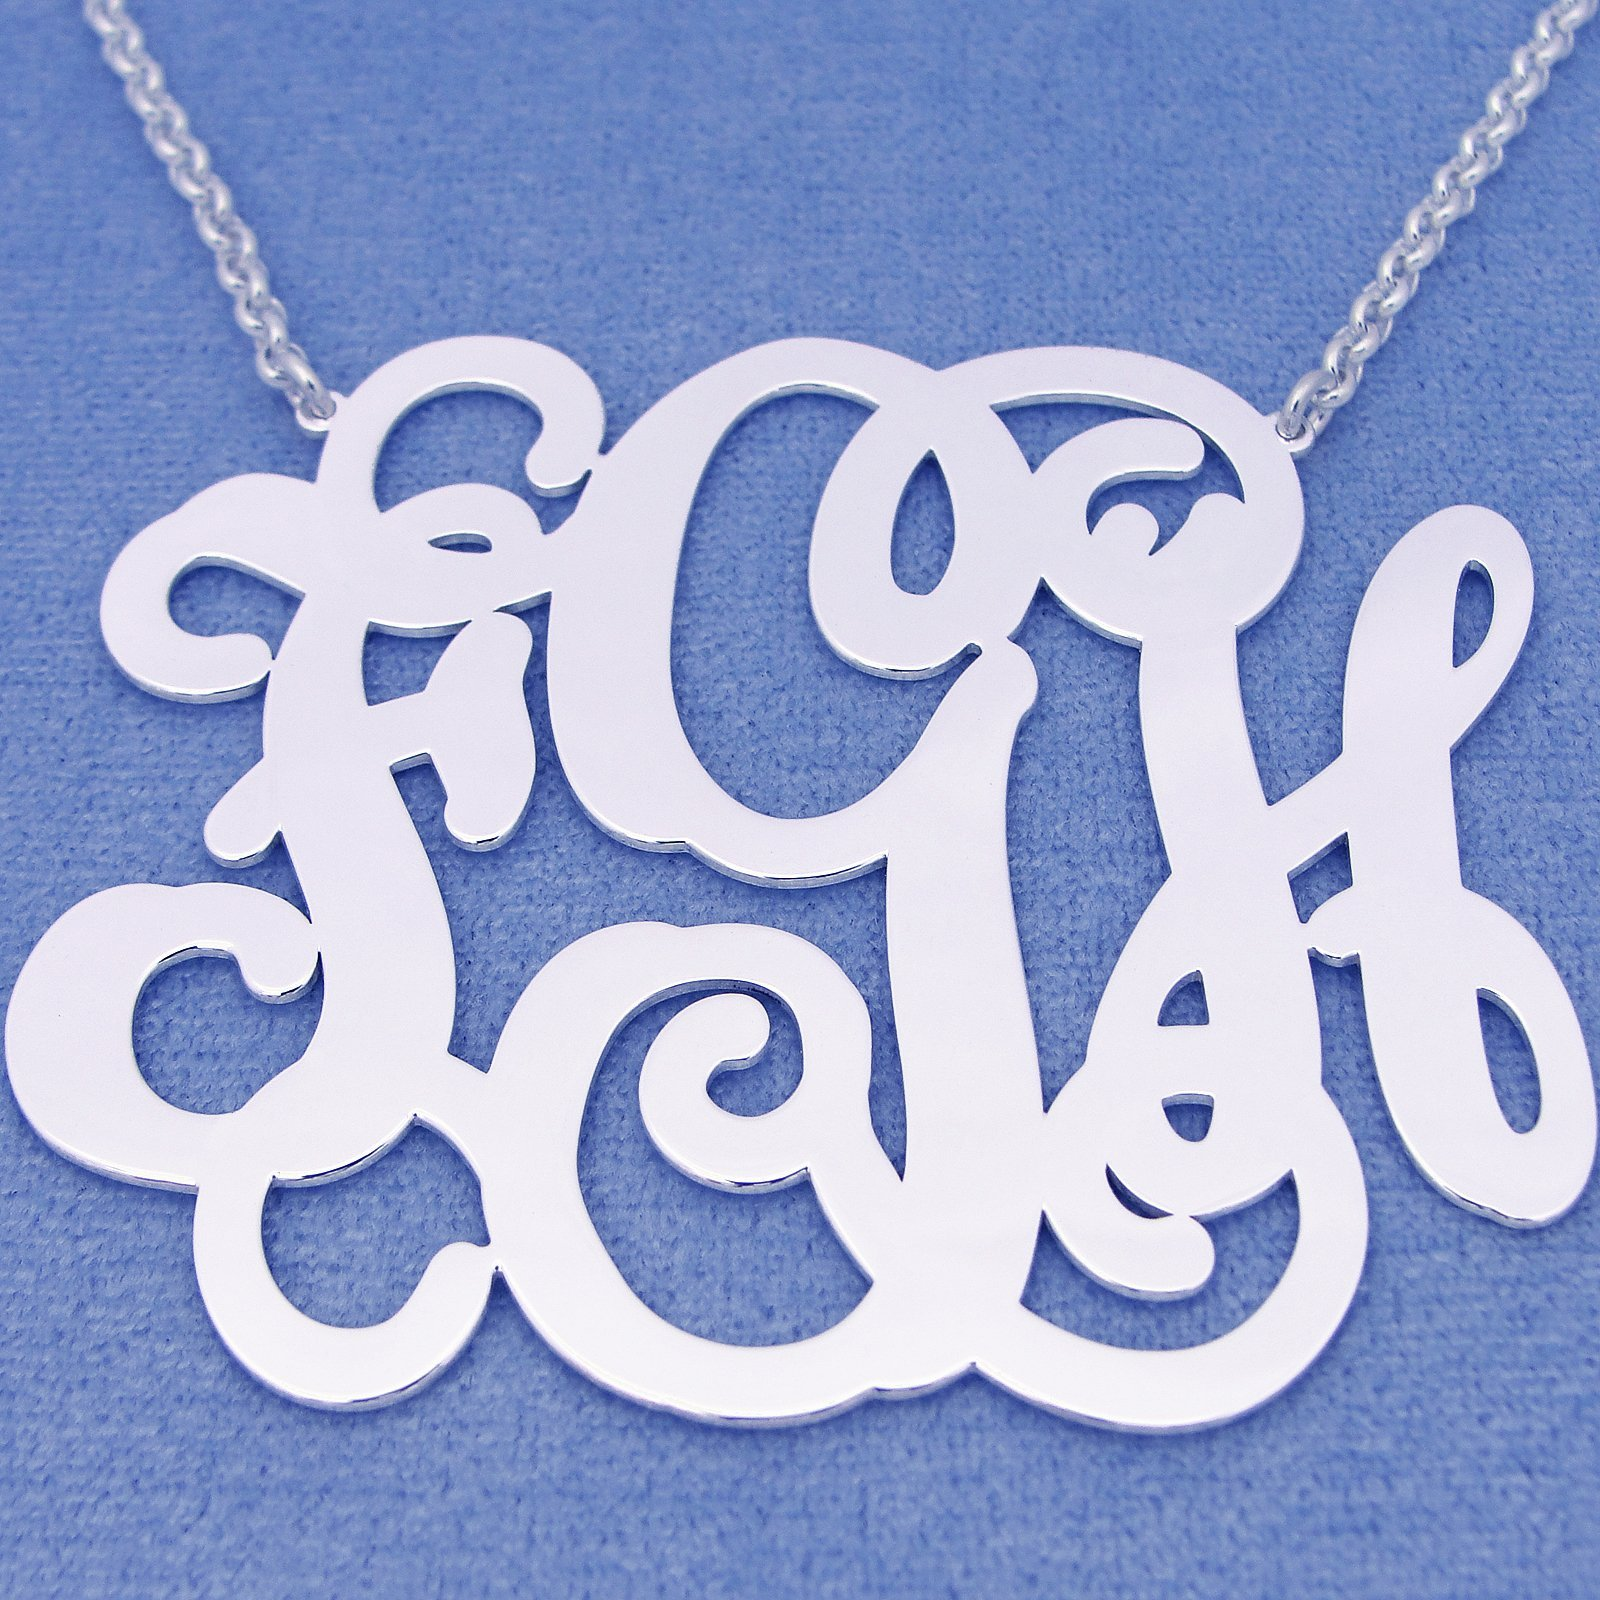 Extra Large 3 Initials Monogram Necklace Silver 2.5 Inch Monogrammed Pendant Jewelry SM36C